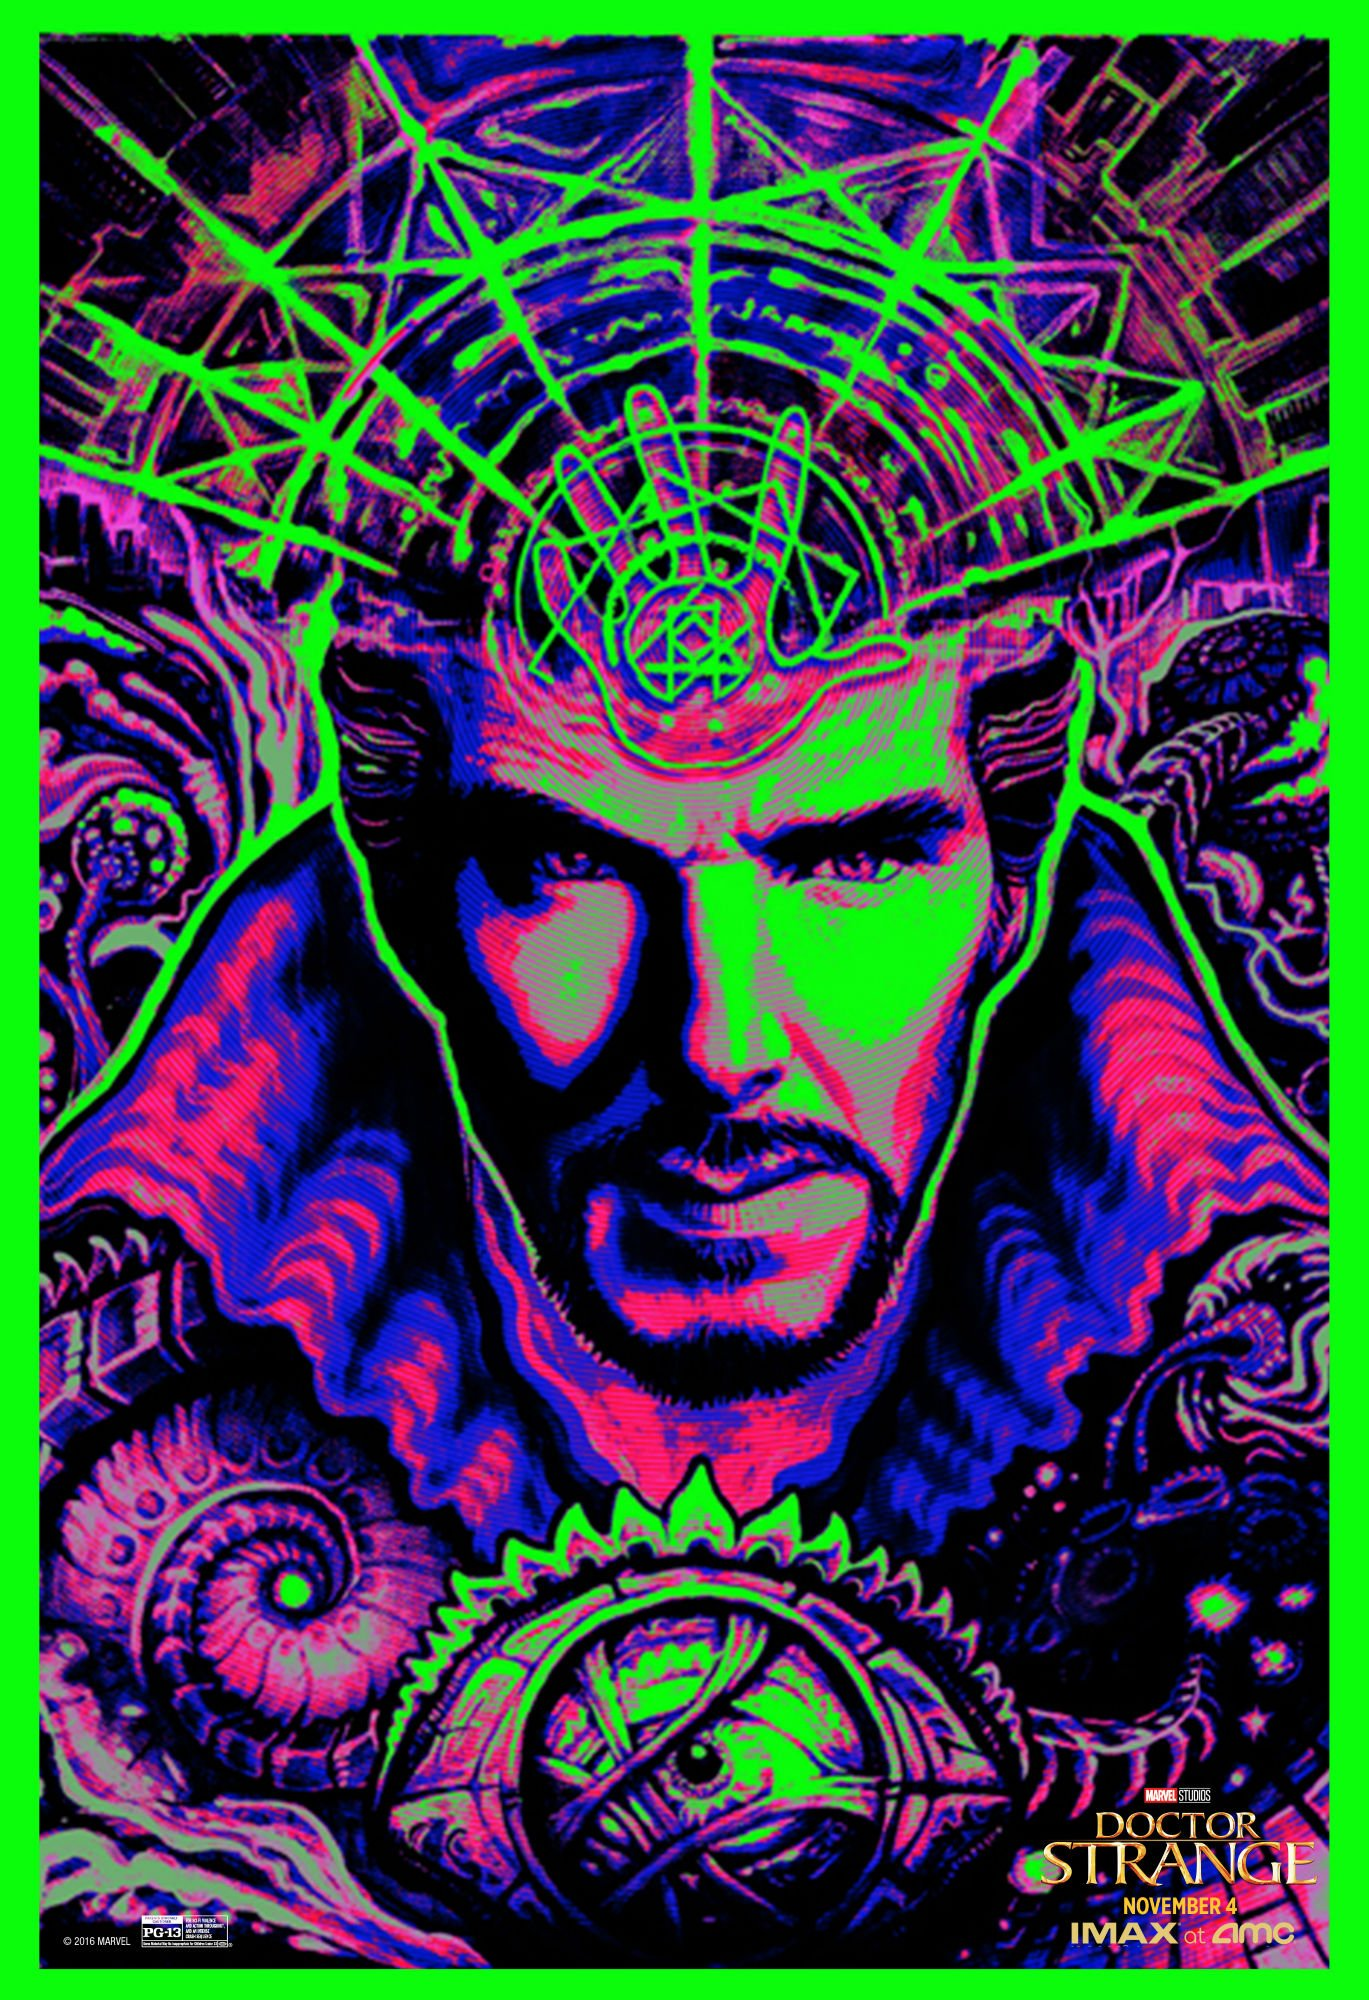 Things Get Trippy In International Doctor Strange Trailer, Blacklight Poster Surfaces